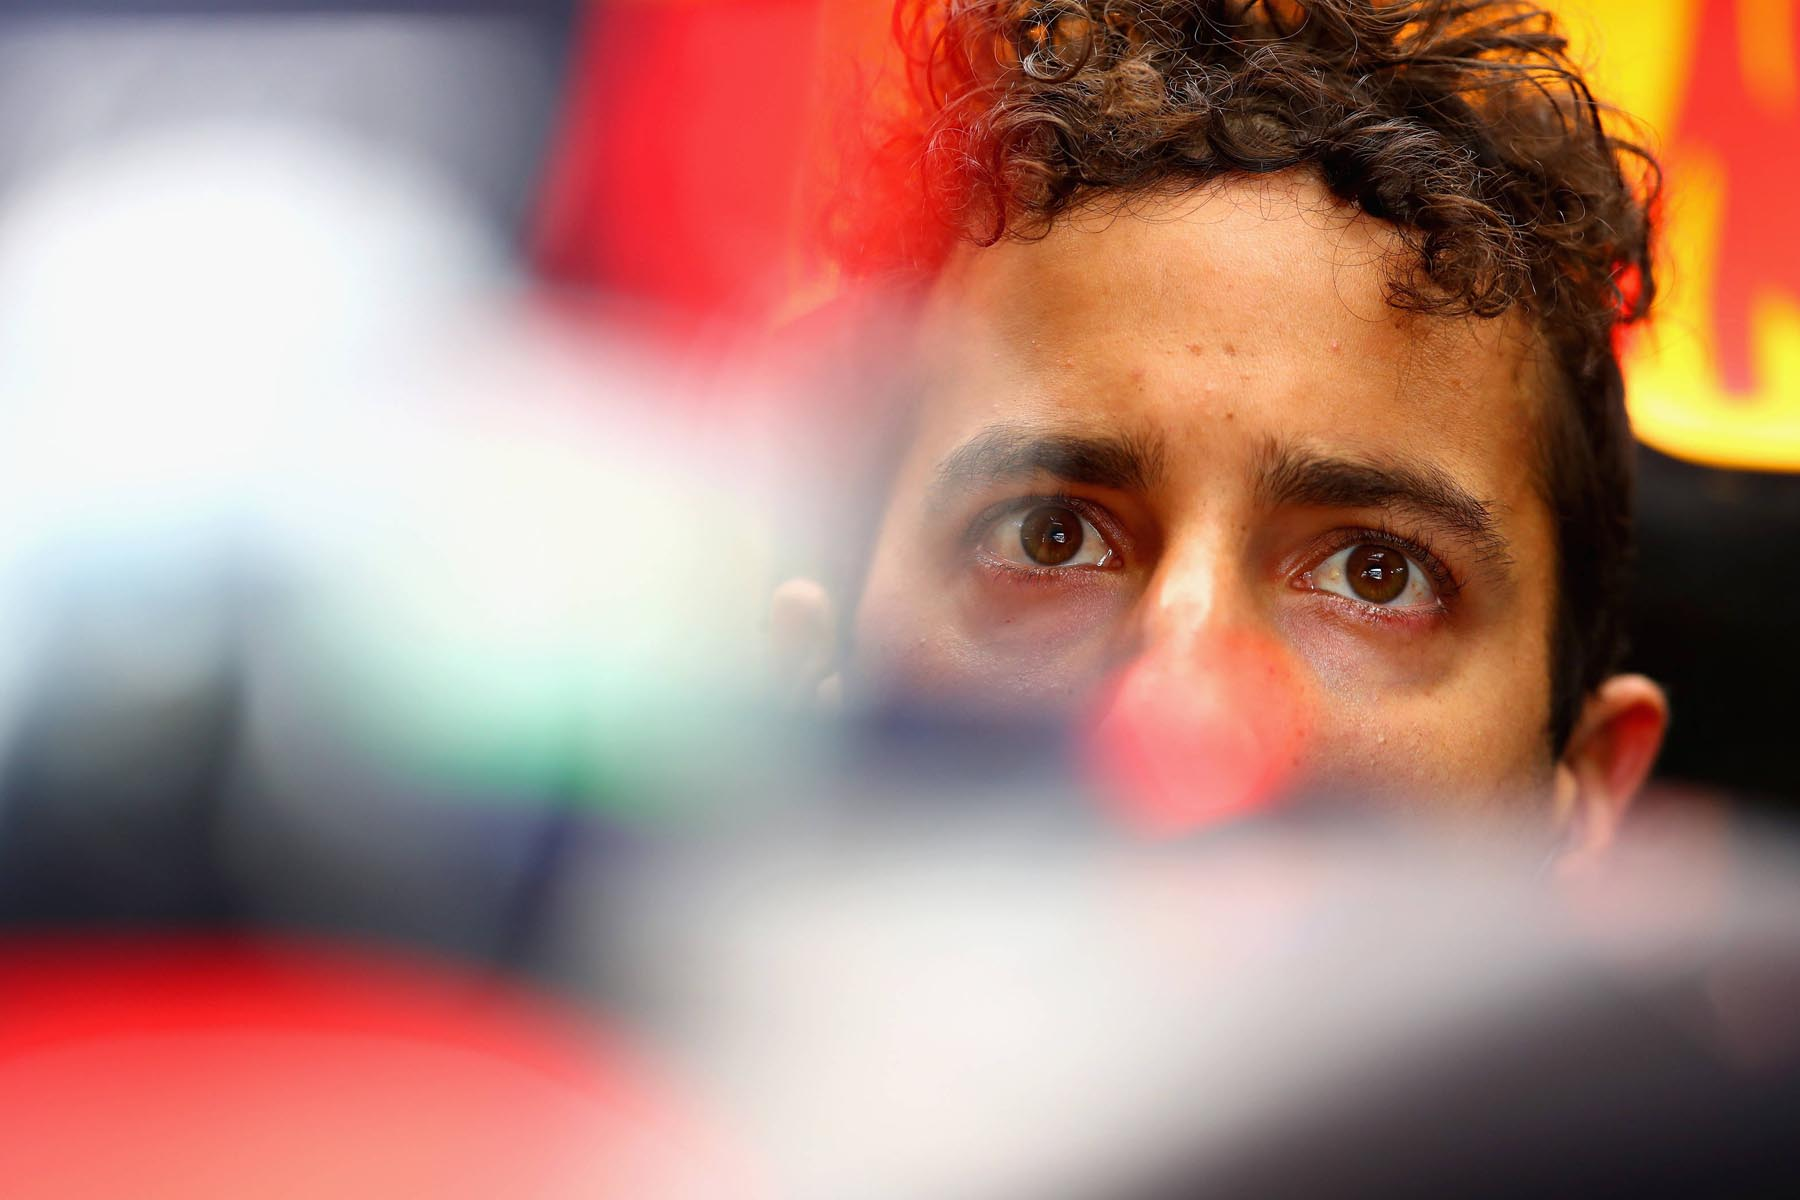 Daniel Ricciardo in his parked car at the 2018 Austrian Grand Prix.